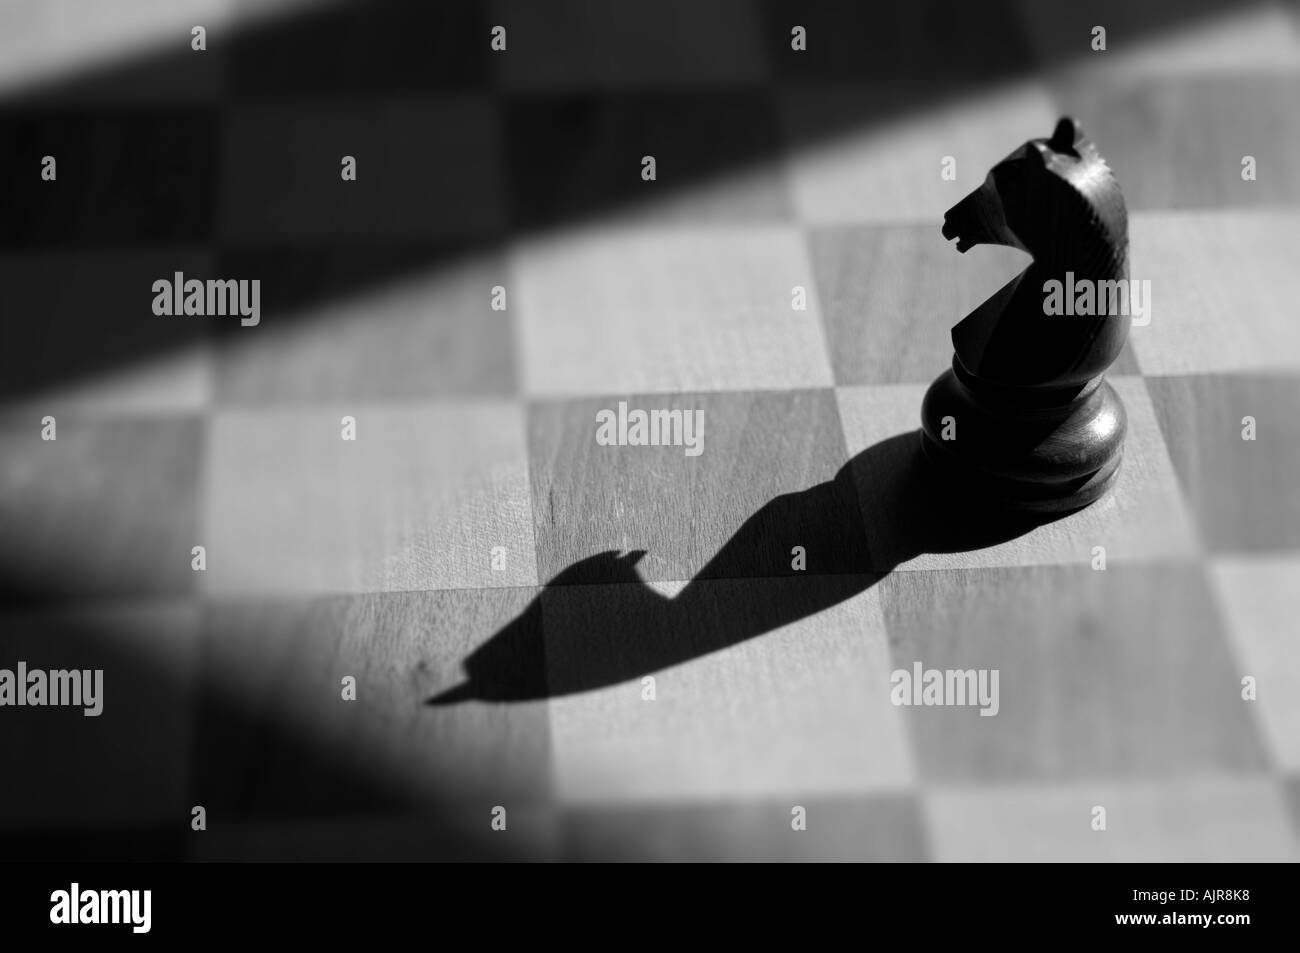 black knight lit dramatically on a chess board - Stock Image